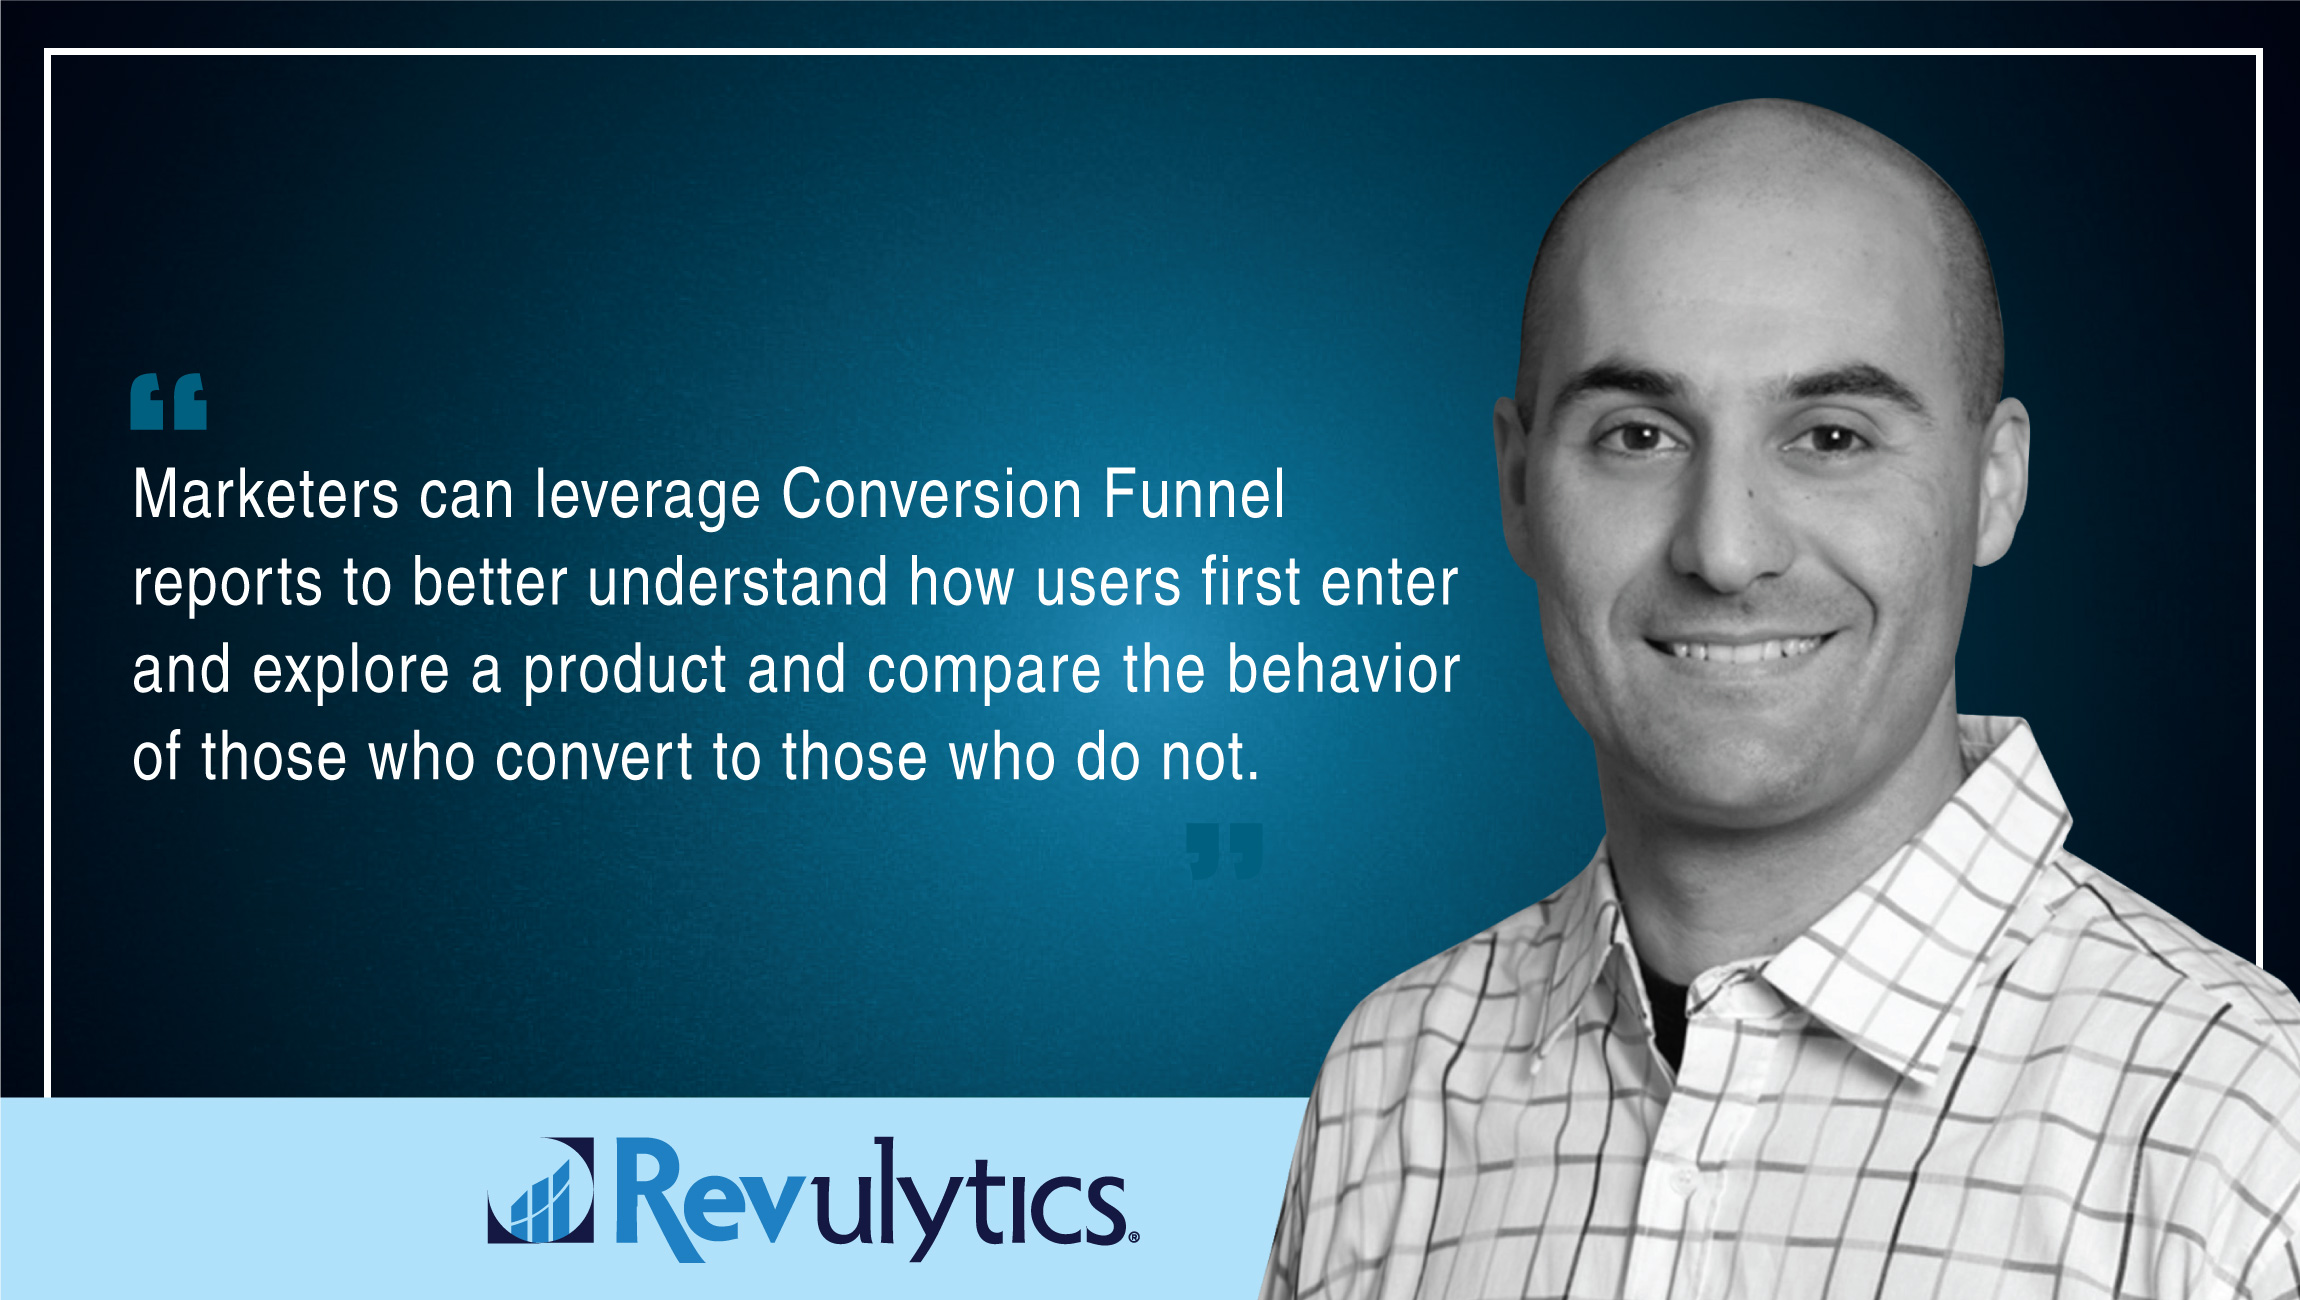 Keith Fenech, VP of Software Analytics at Revulytics/ Compliance Analytics